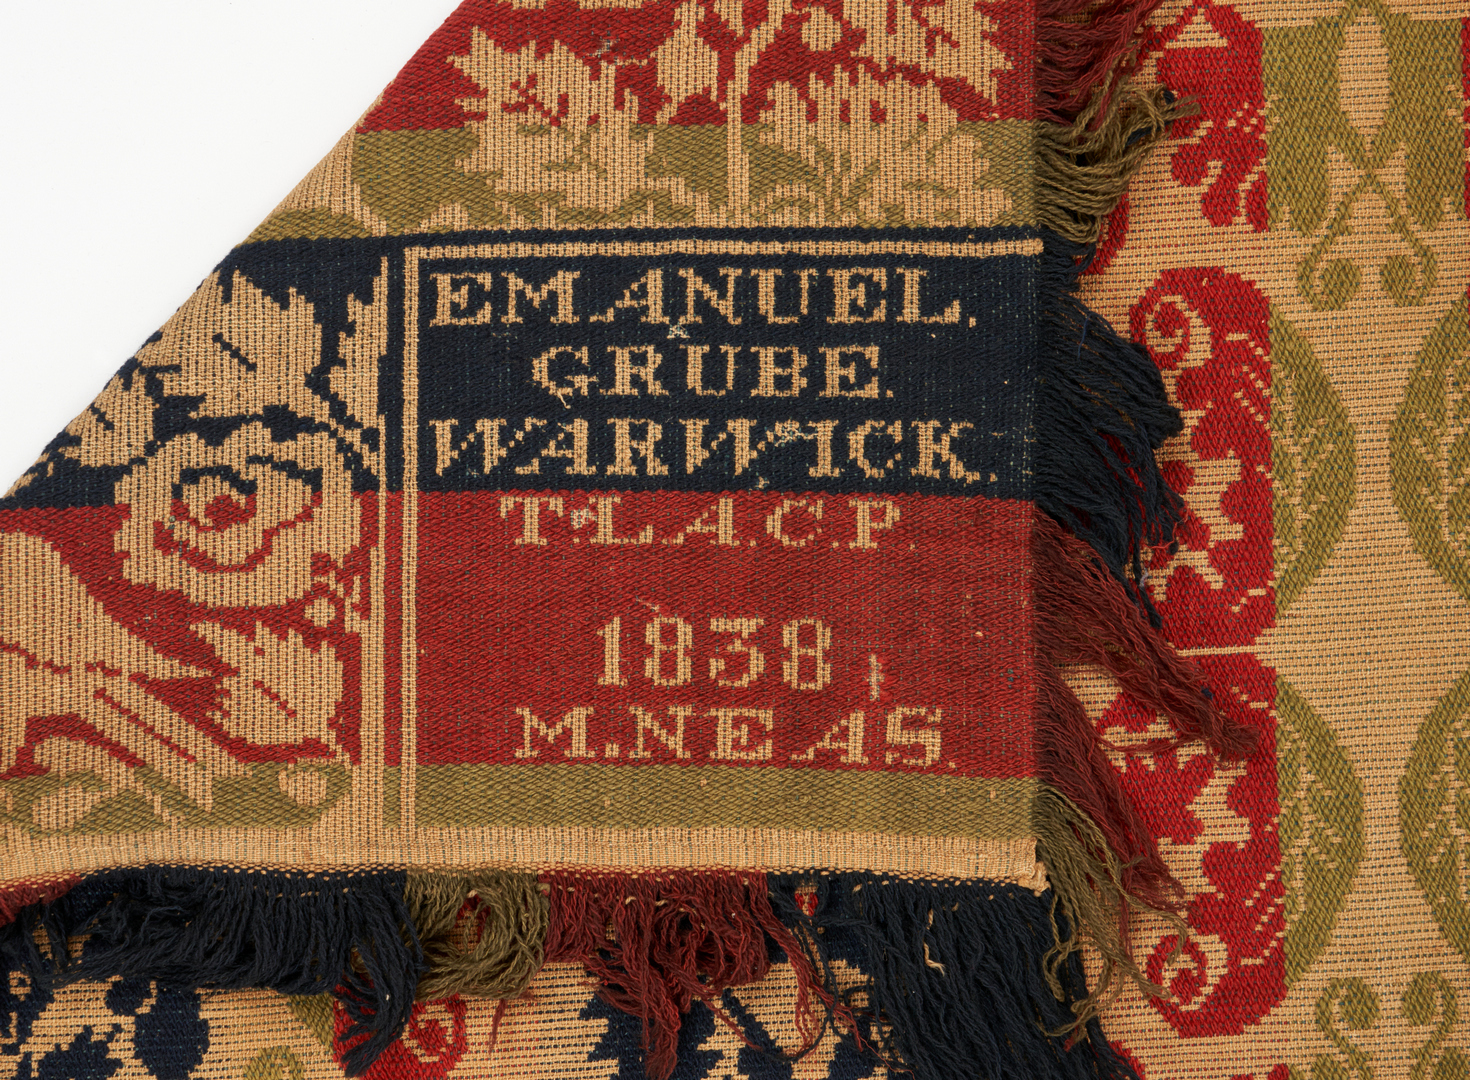 Lot 1144: Signed Jacquard coverlet, 1838